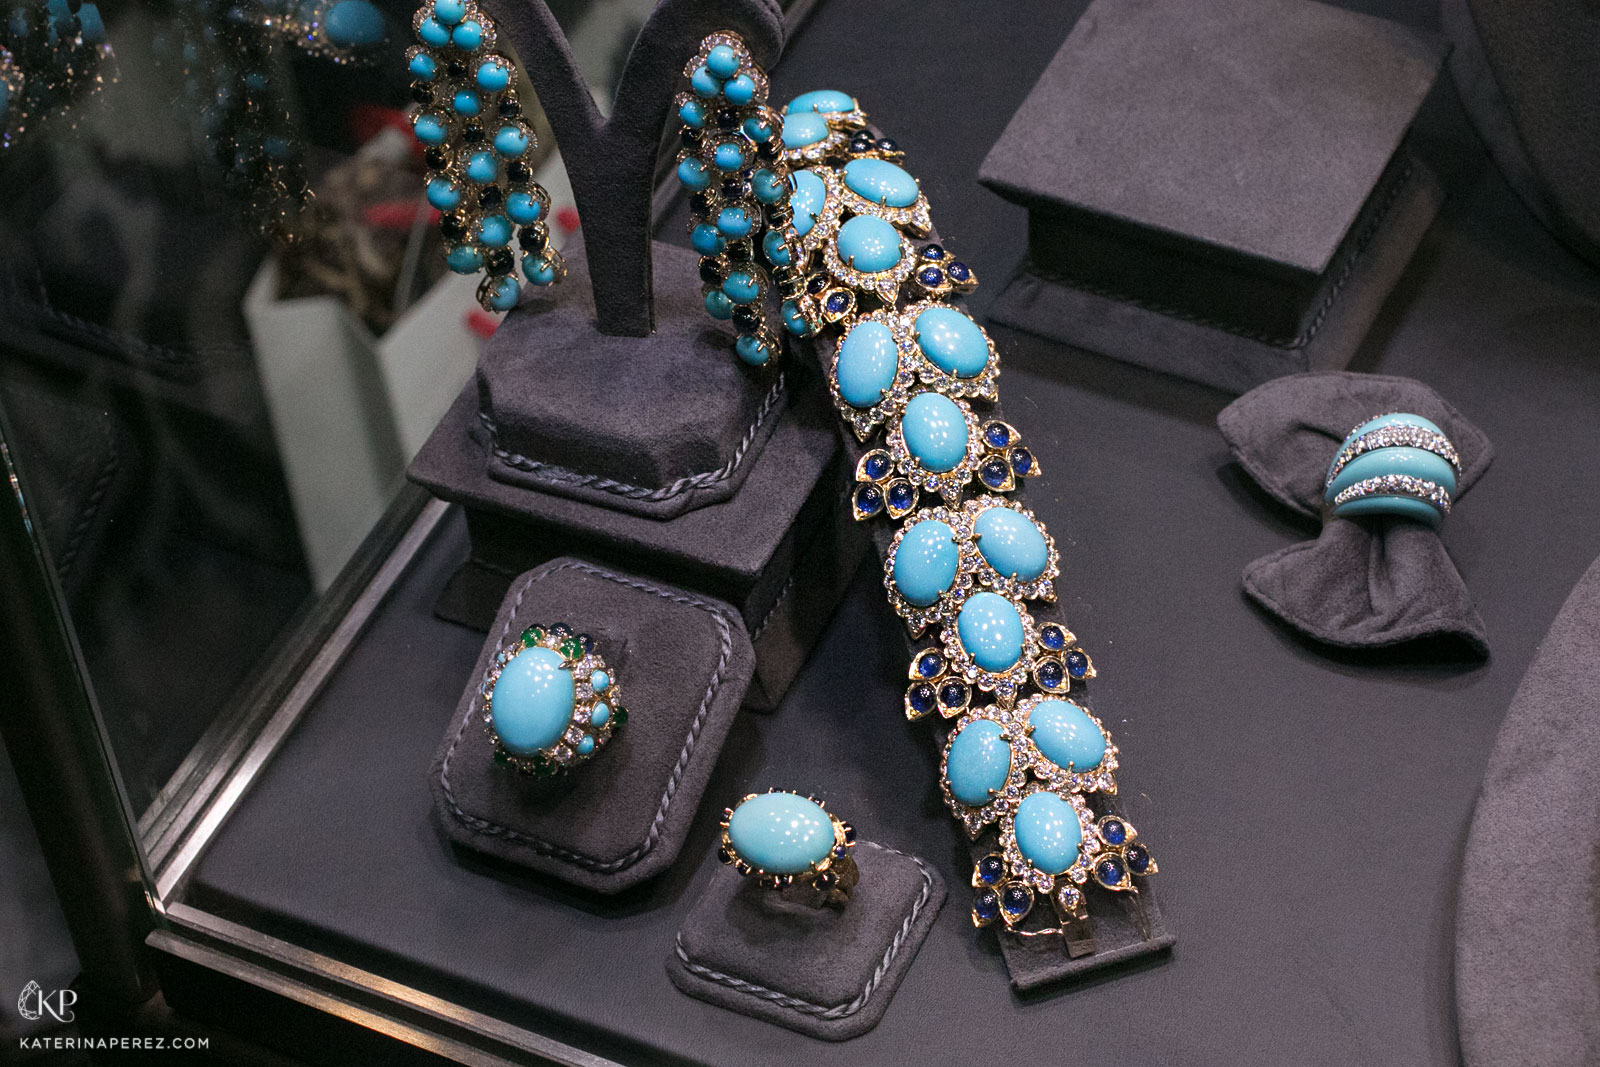 Veschetti 'Vera' bracelet, earrings and rings featuring turquoise, sapphires, emeralds and diamonds